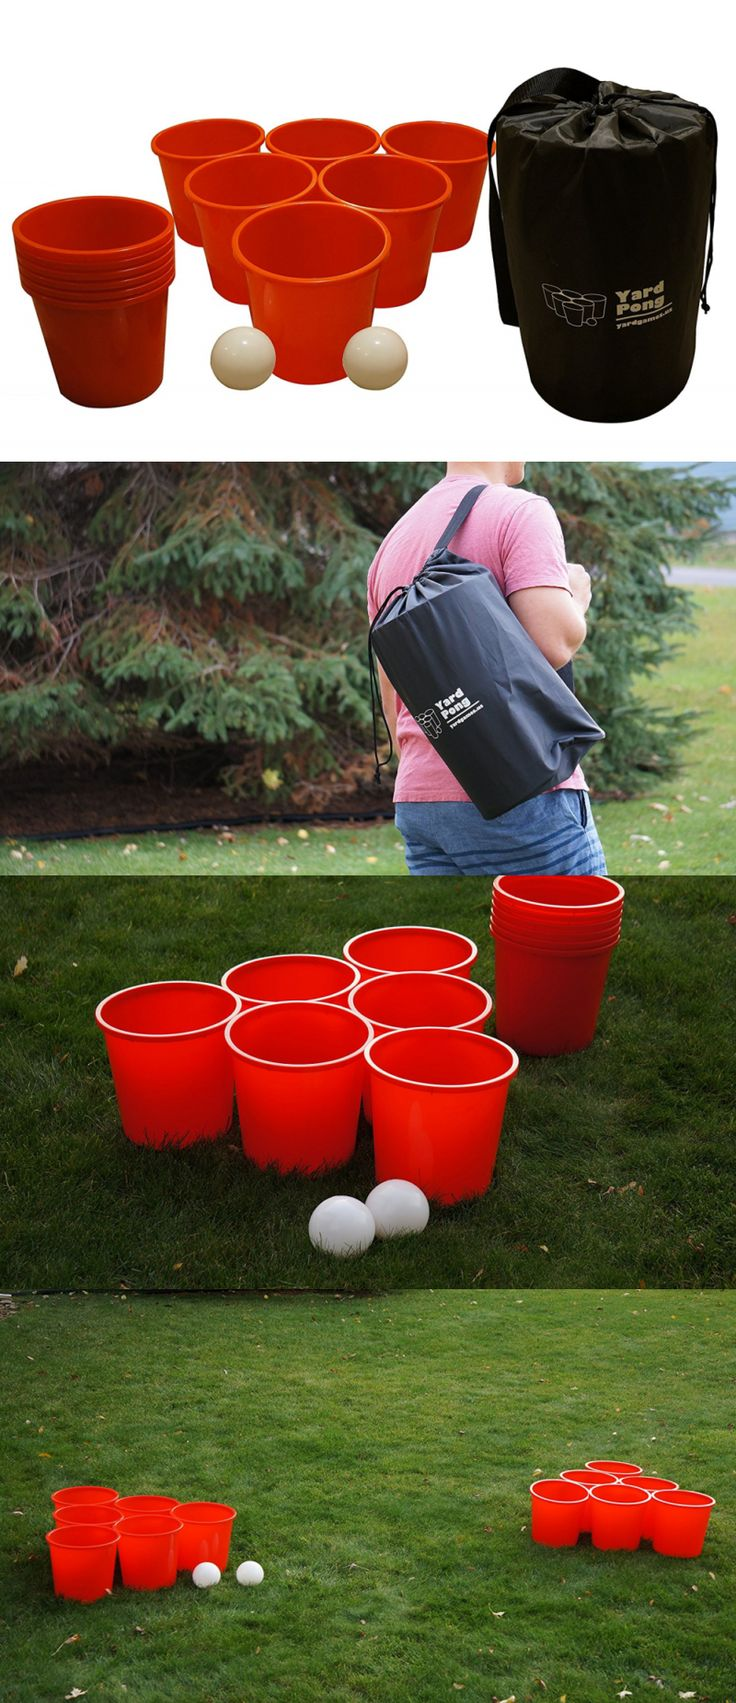 Other Backyard Games 159081: Giant Yard Pong Beer Pong Game Perfect For Outdoor Bbqs Camping Fun 12 Buckets -> BUY IT NOW ONLY: $57.99 on eBay!